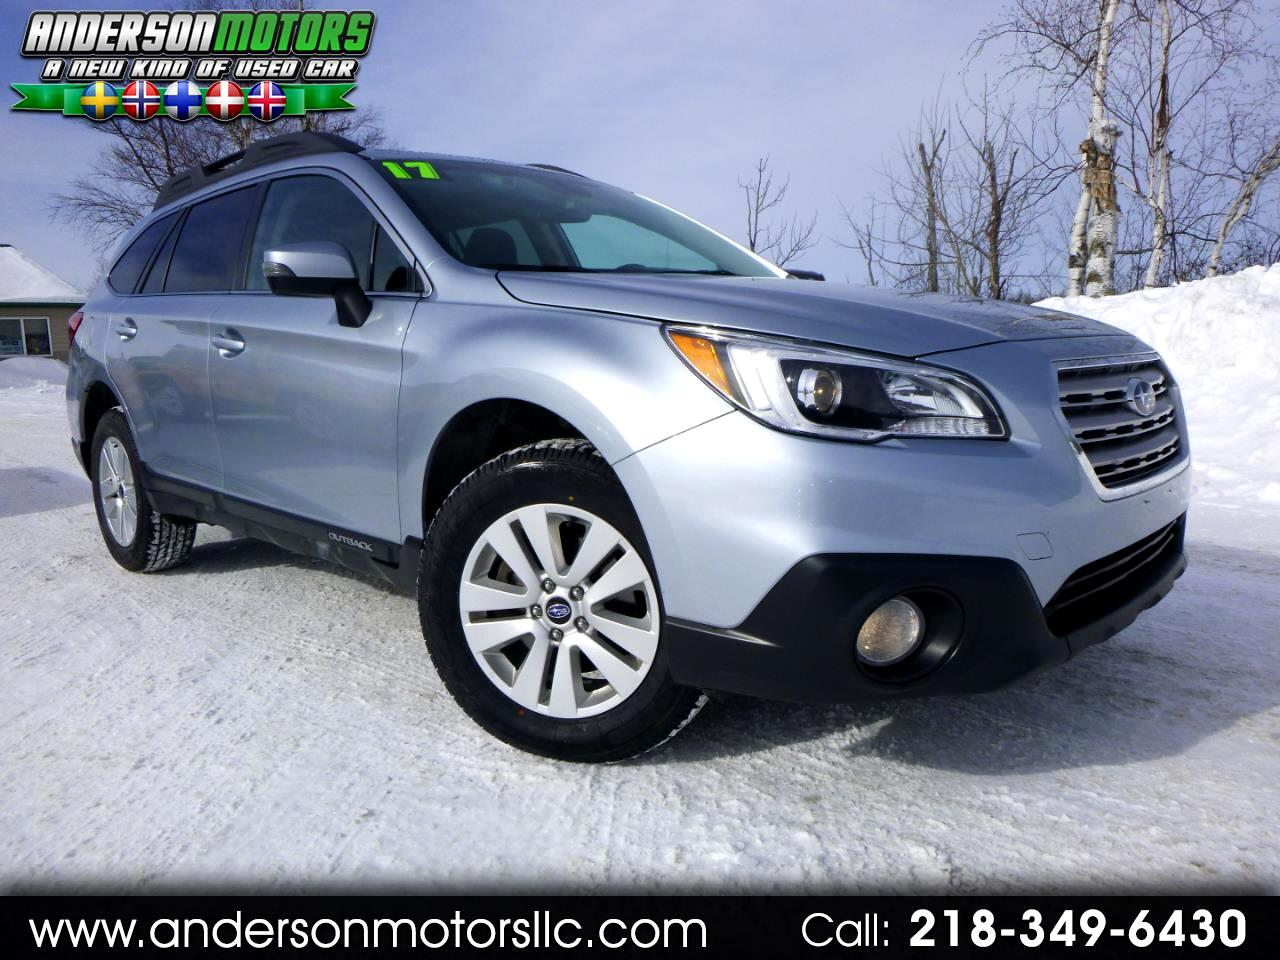 2017 Subaru Outback 2.5I Premium w/Eyesight